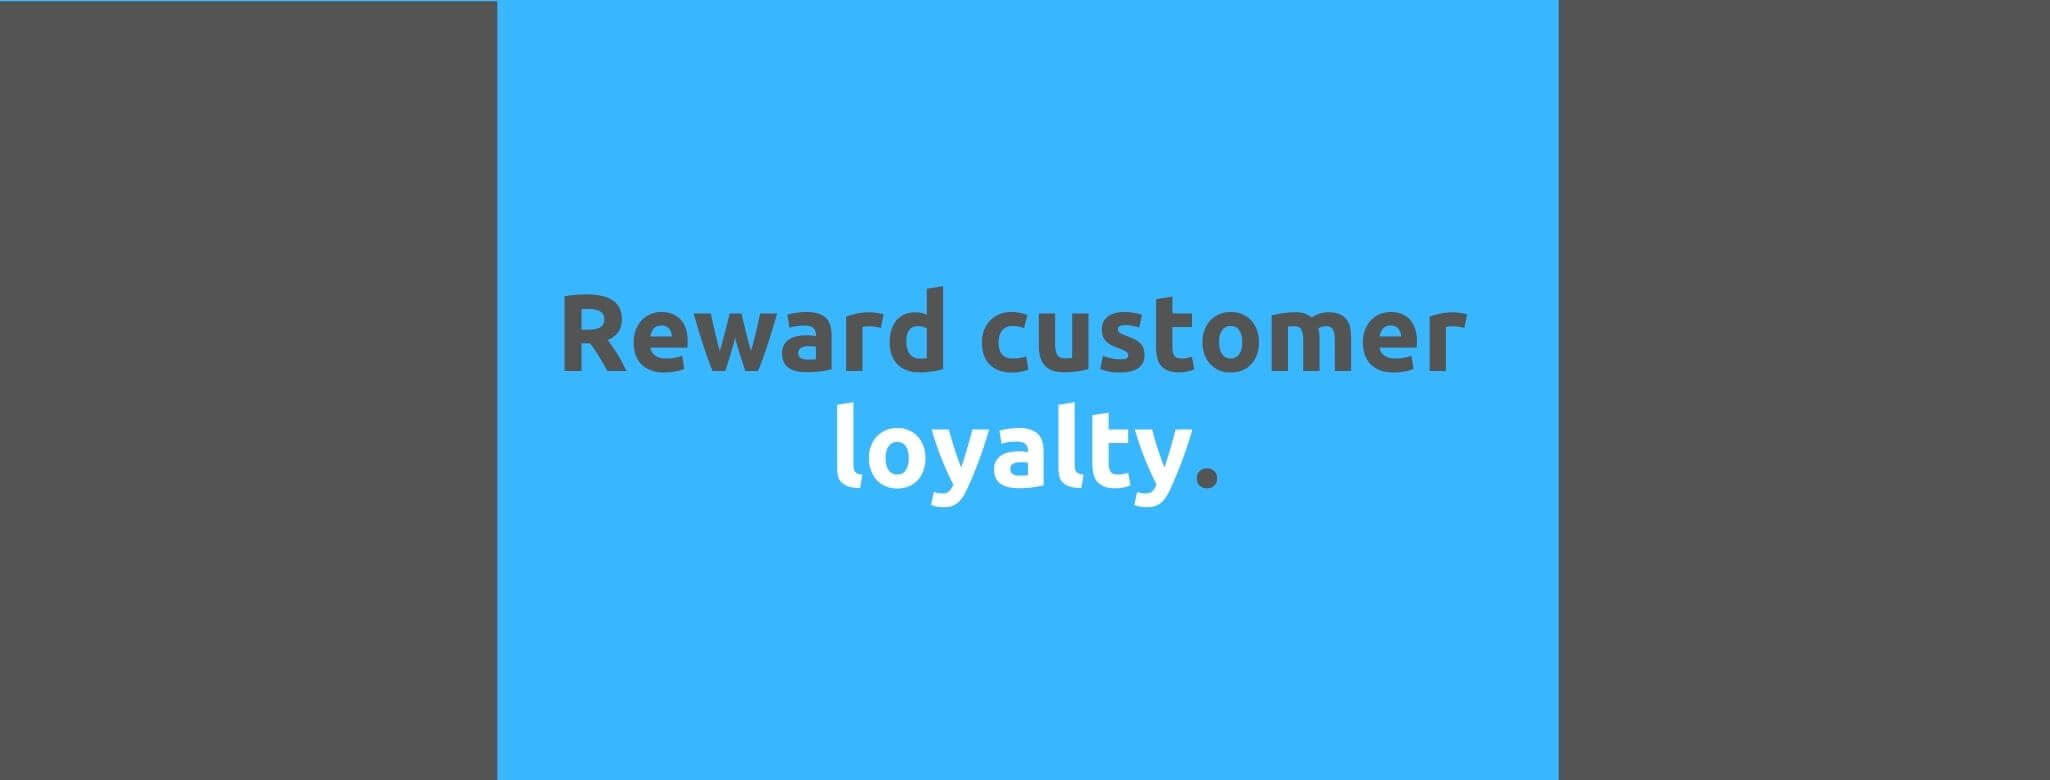 Reward customer loyalty - Customer Expectations - Replyco Helpdesk Software for eCommerce